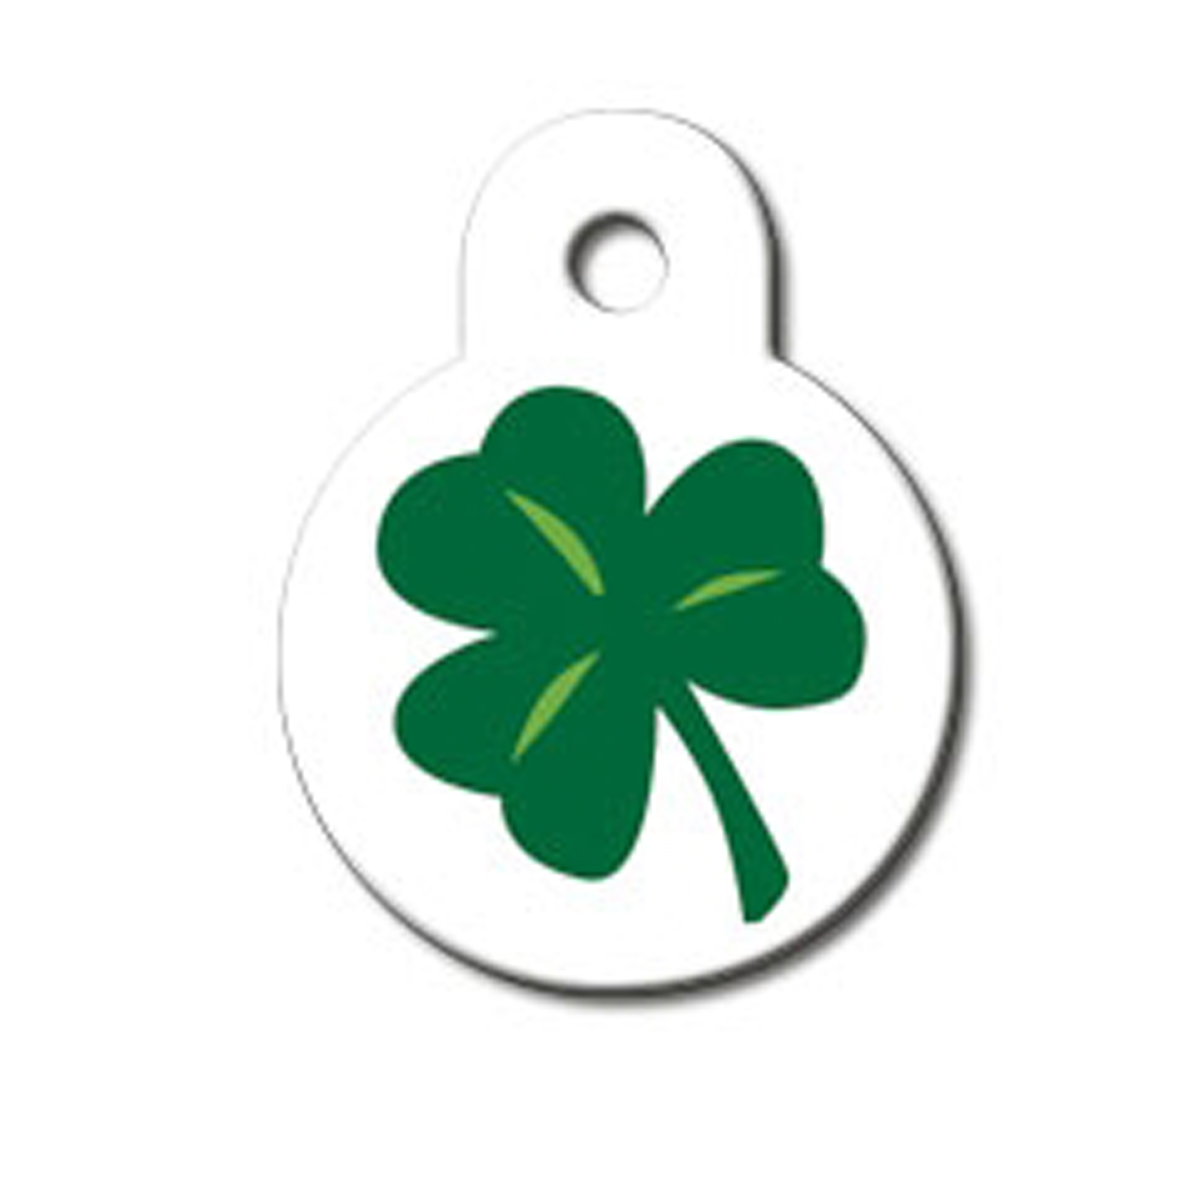 Shamrock Engravable Pet I.D. Tag - Small Circle